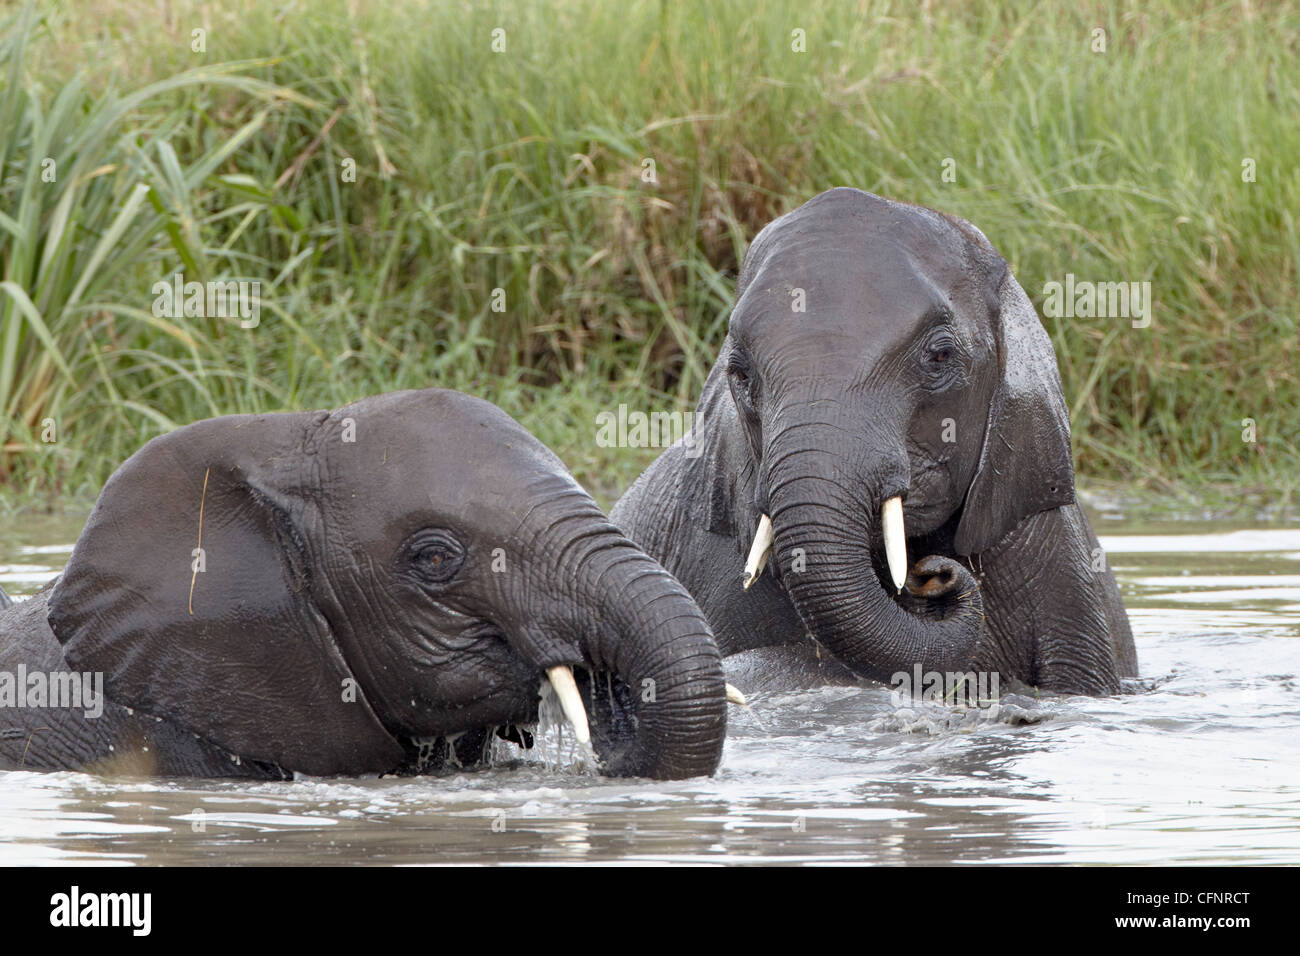 Two young African elephant (Loxodonta africana), Tanzania, East Africa, Africa - Stock Image